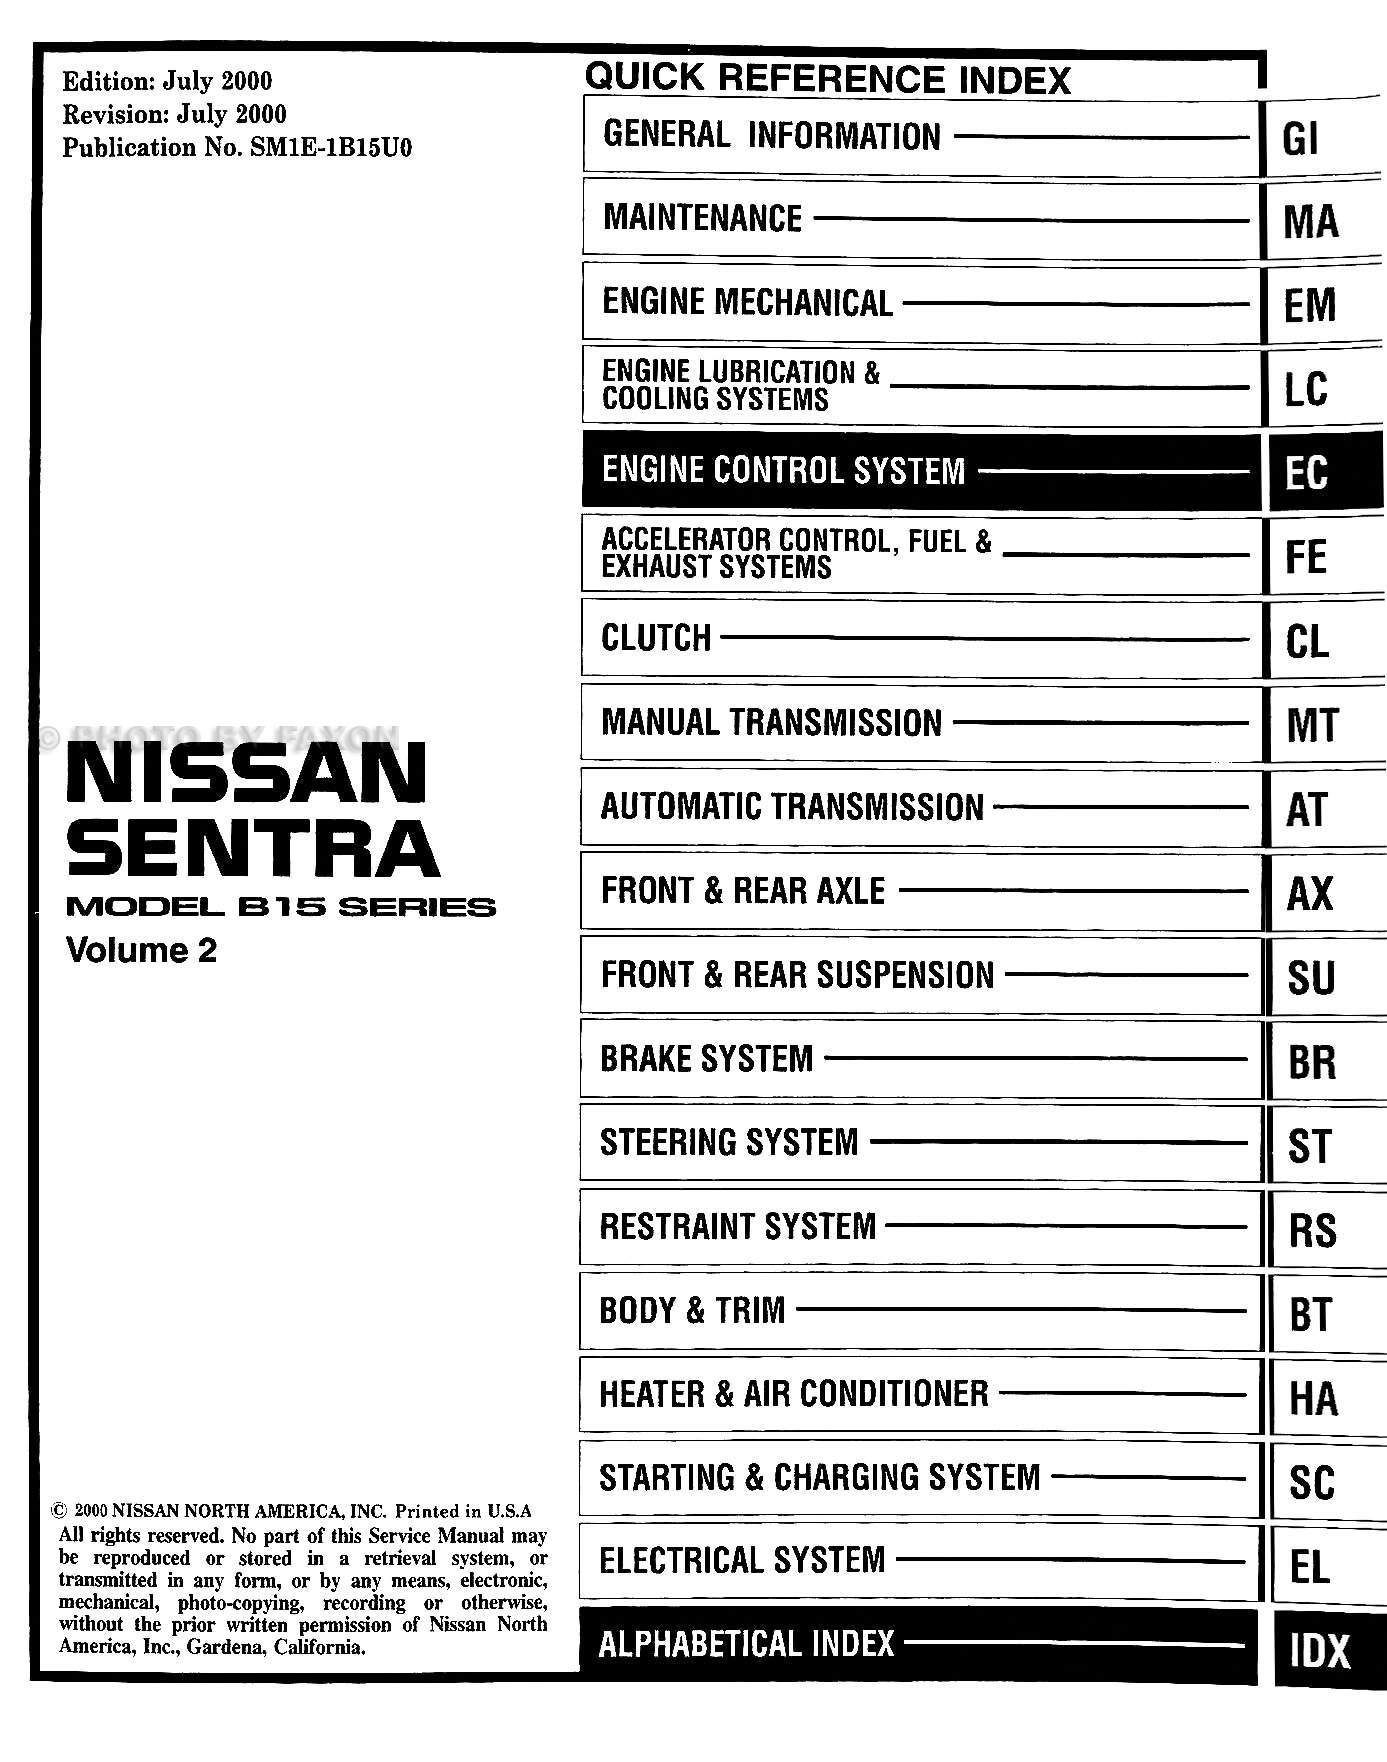 2001NissanSentraORMSet TOC 2001 nissan sentra cd rom repair shop manual 2004 nissan sentra 1.8 fuse box diagram at gsmportal.co